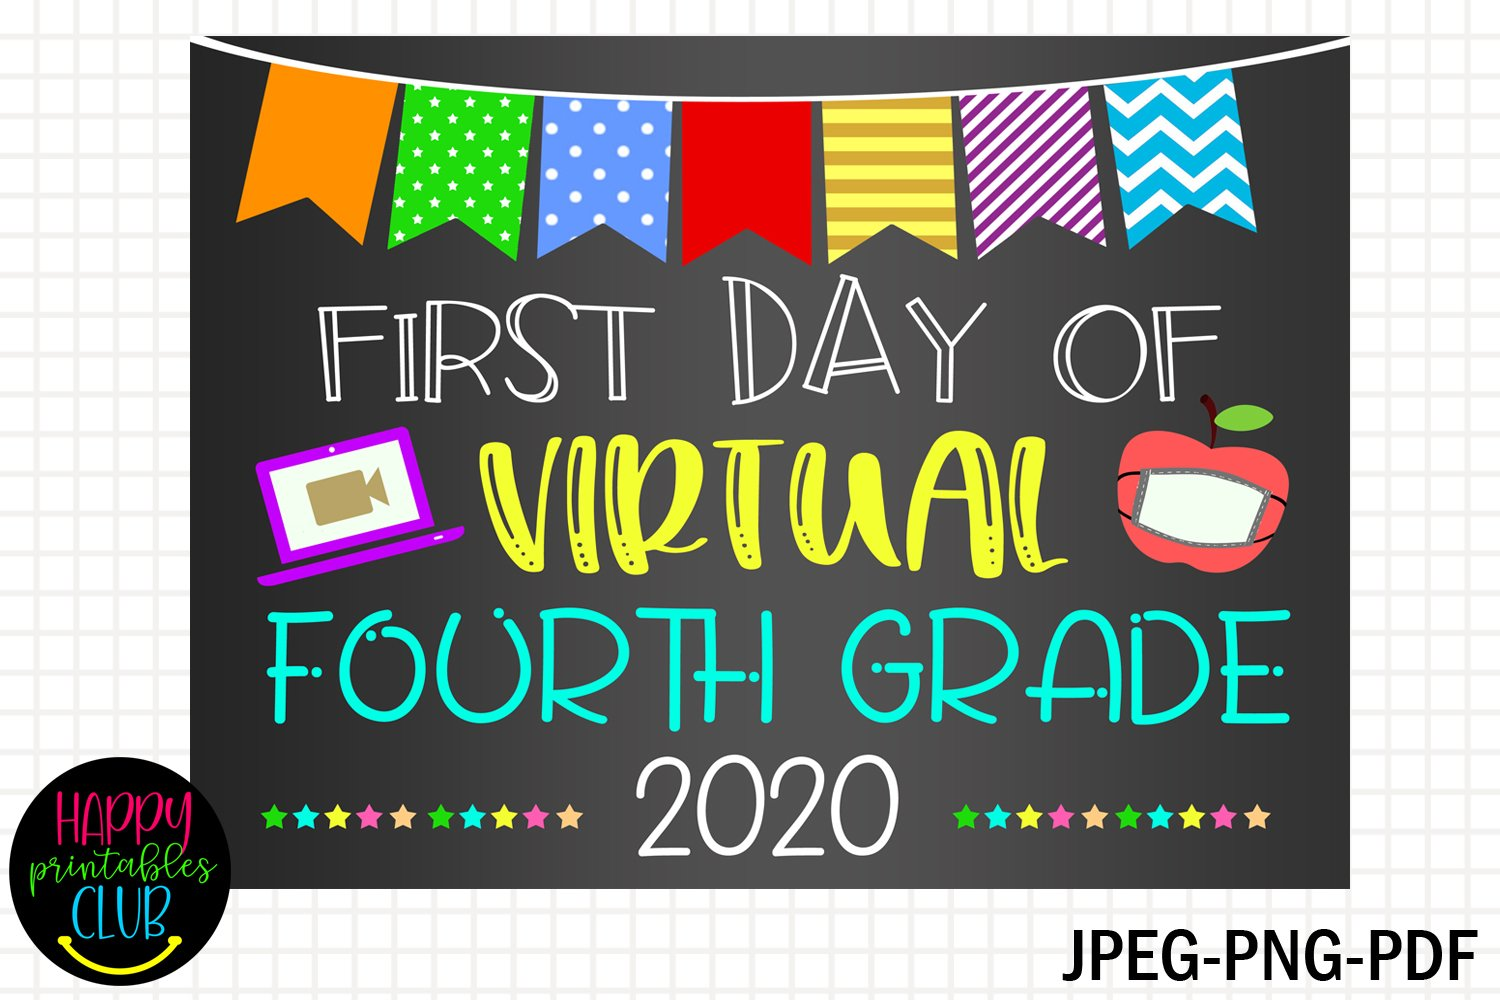 hight resolution of First Day Virtual Fourth Grade Sign- First Day of School (853377)   Signs    Design Bundles